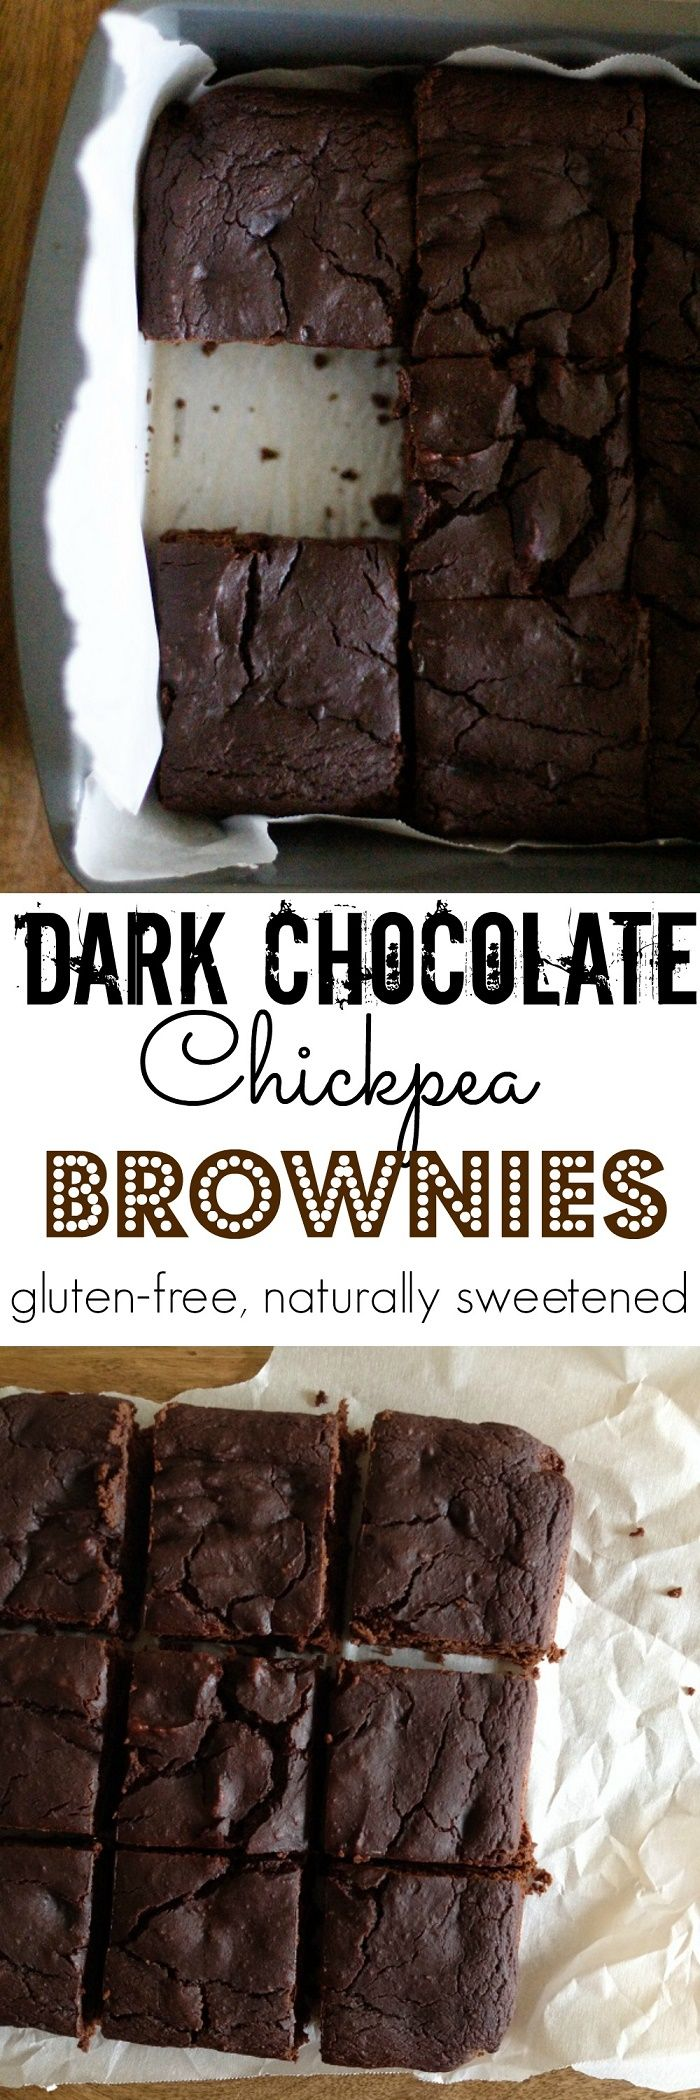 Dark Chocolate Chickpea Brownies - healthy flourless brownies made with garbanzo beans and naturally sweetened | TheRoastedRoot.net…